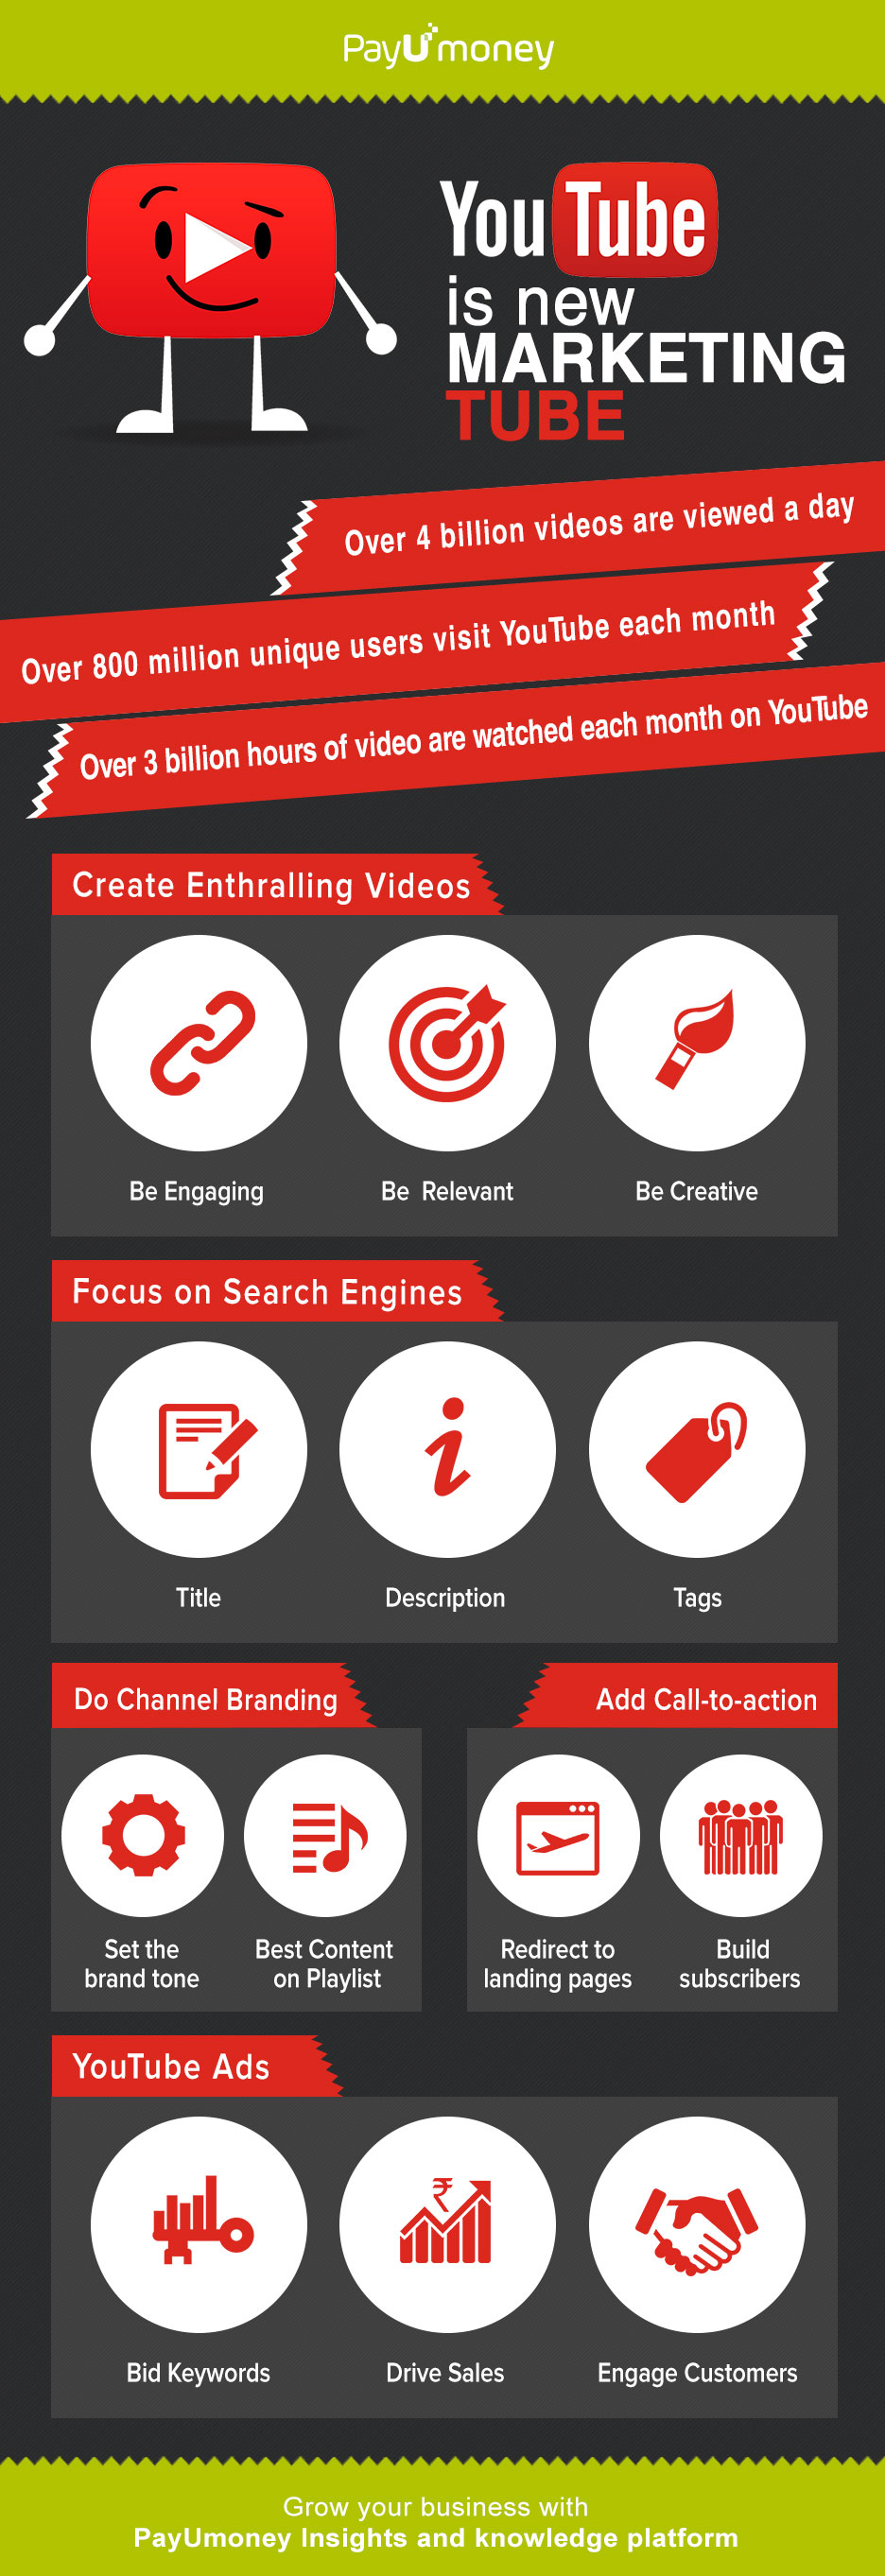 InfoGraphic_Youtube_Marketing